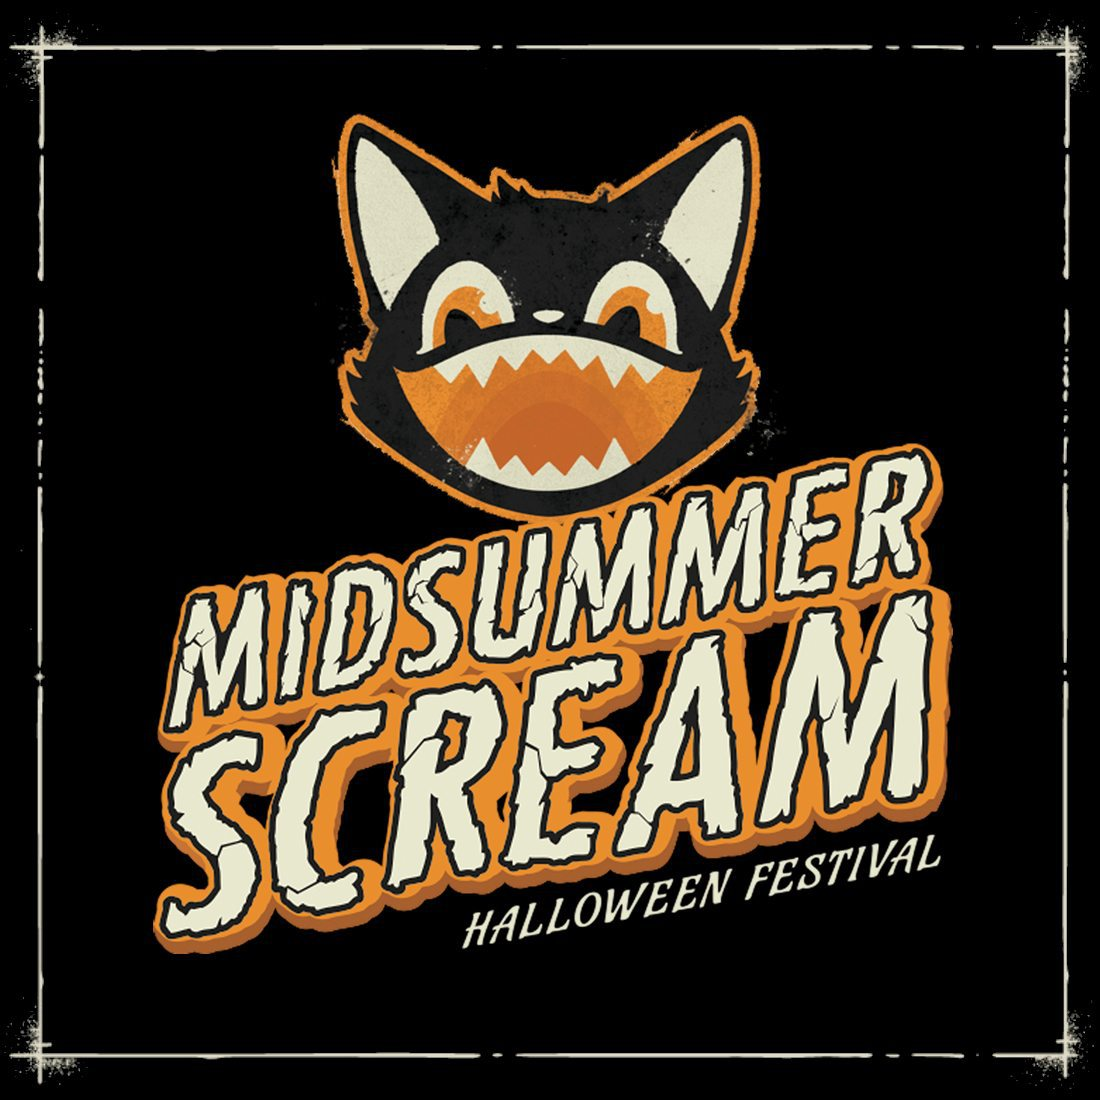 Midsummer Scream - Premier Halloween Convention - Scares and fun - Haunting